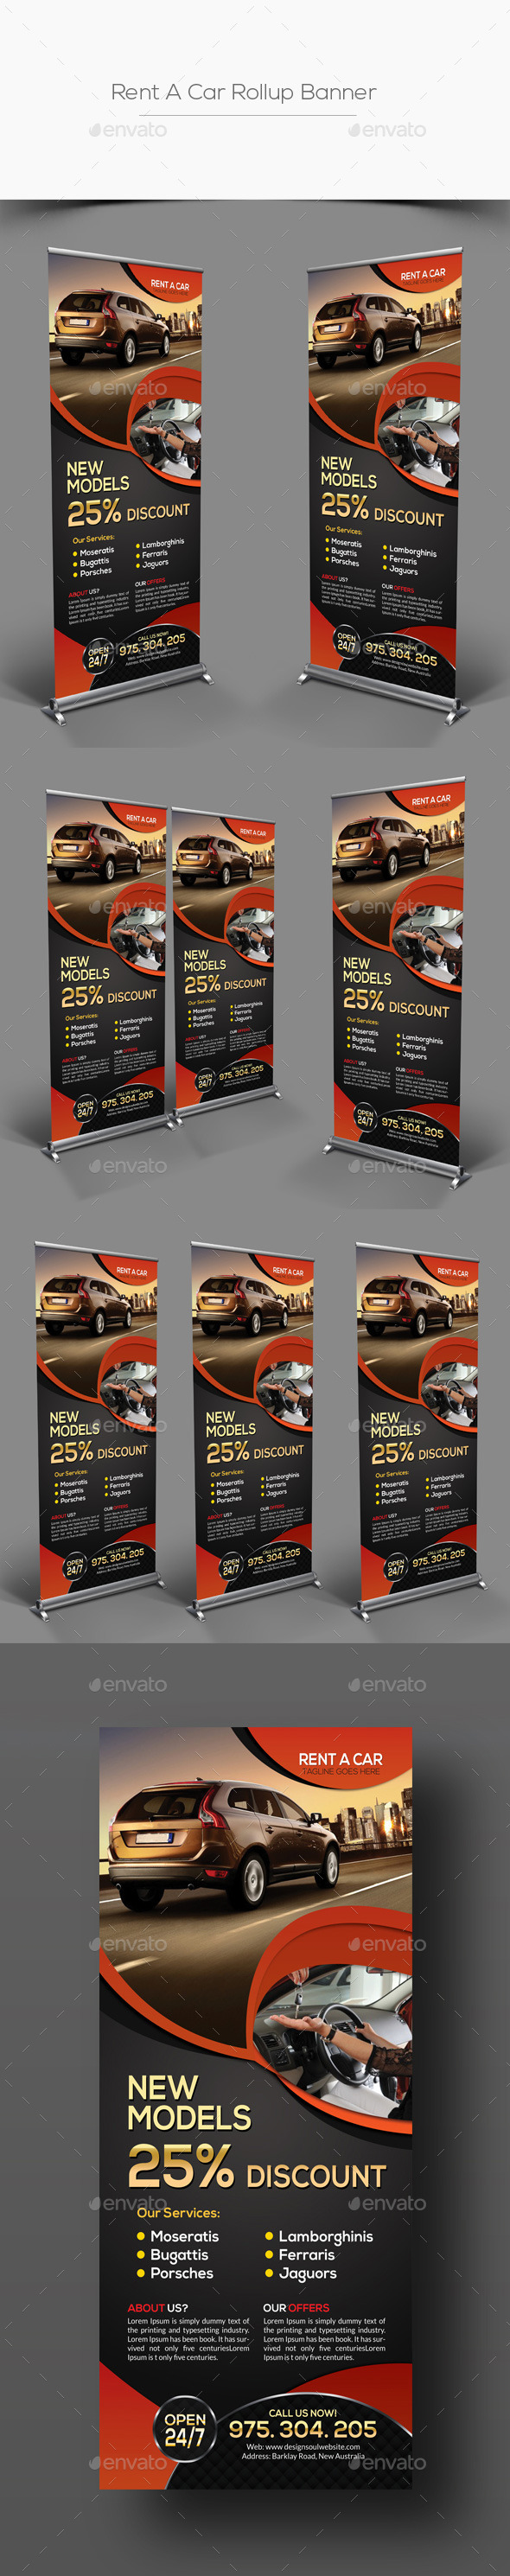 Rent A Car Rollup Banner